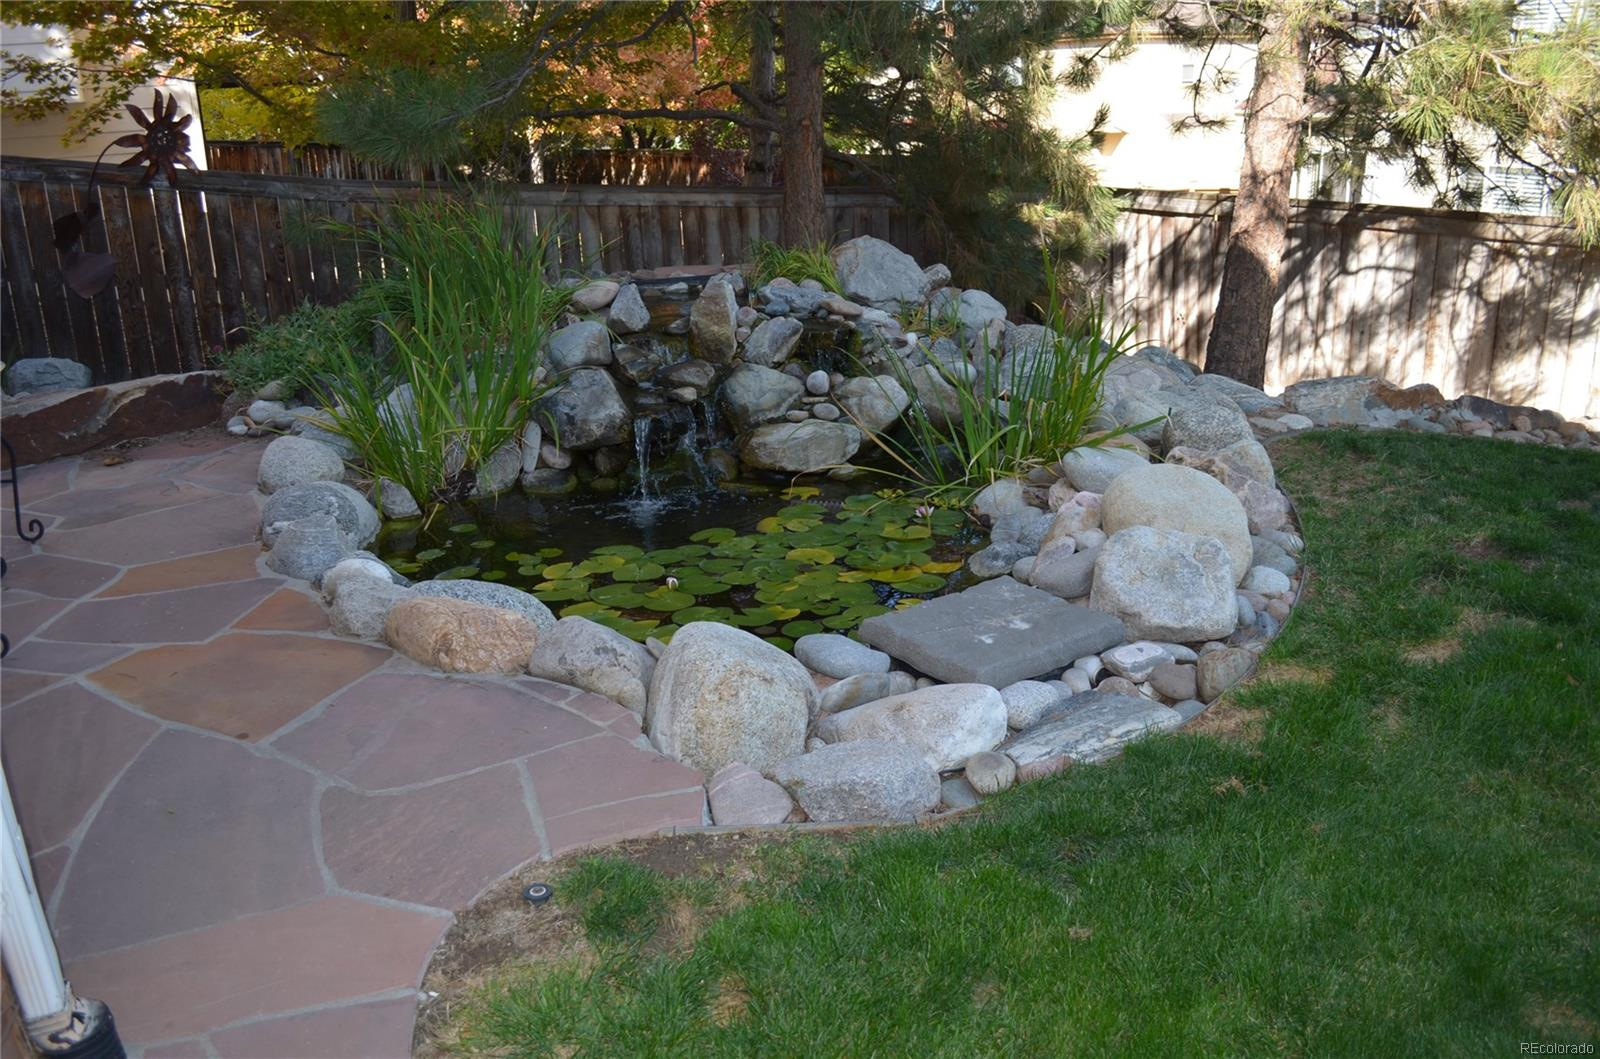 Enjoy the relaxing sound of the trickling water from the pond with water feature